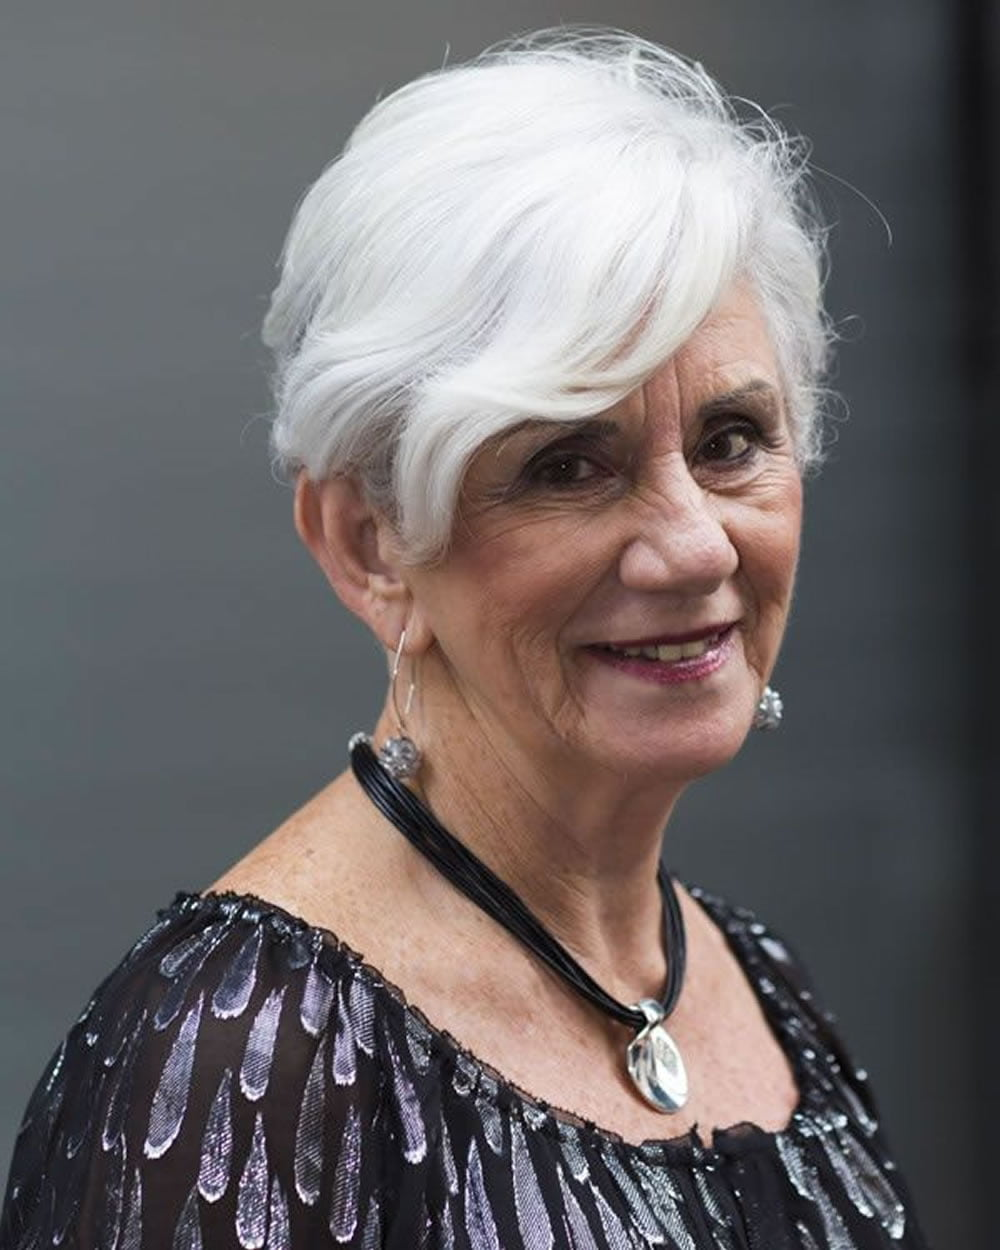 2018 S Best Haircuts For Older Women Over 50 To 60 Page